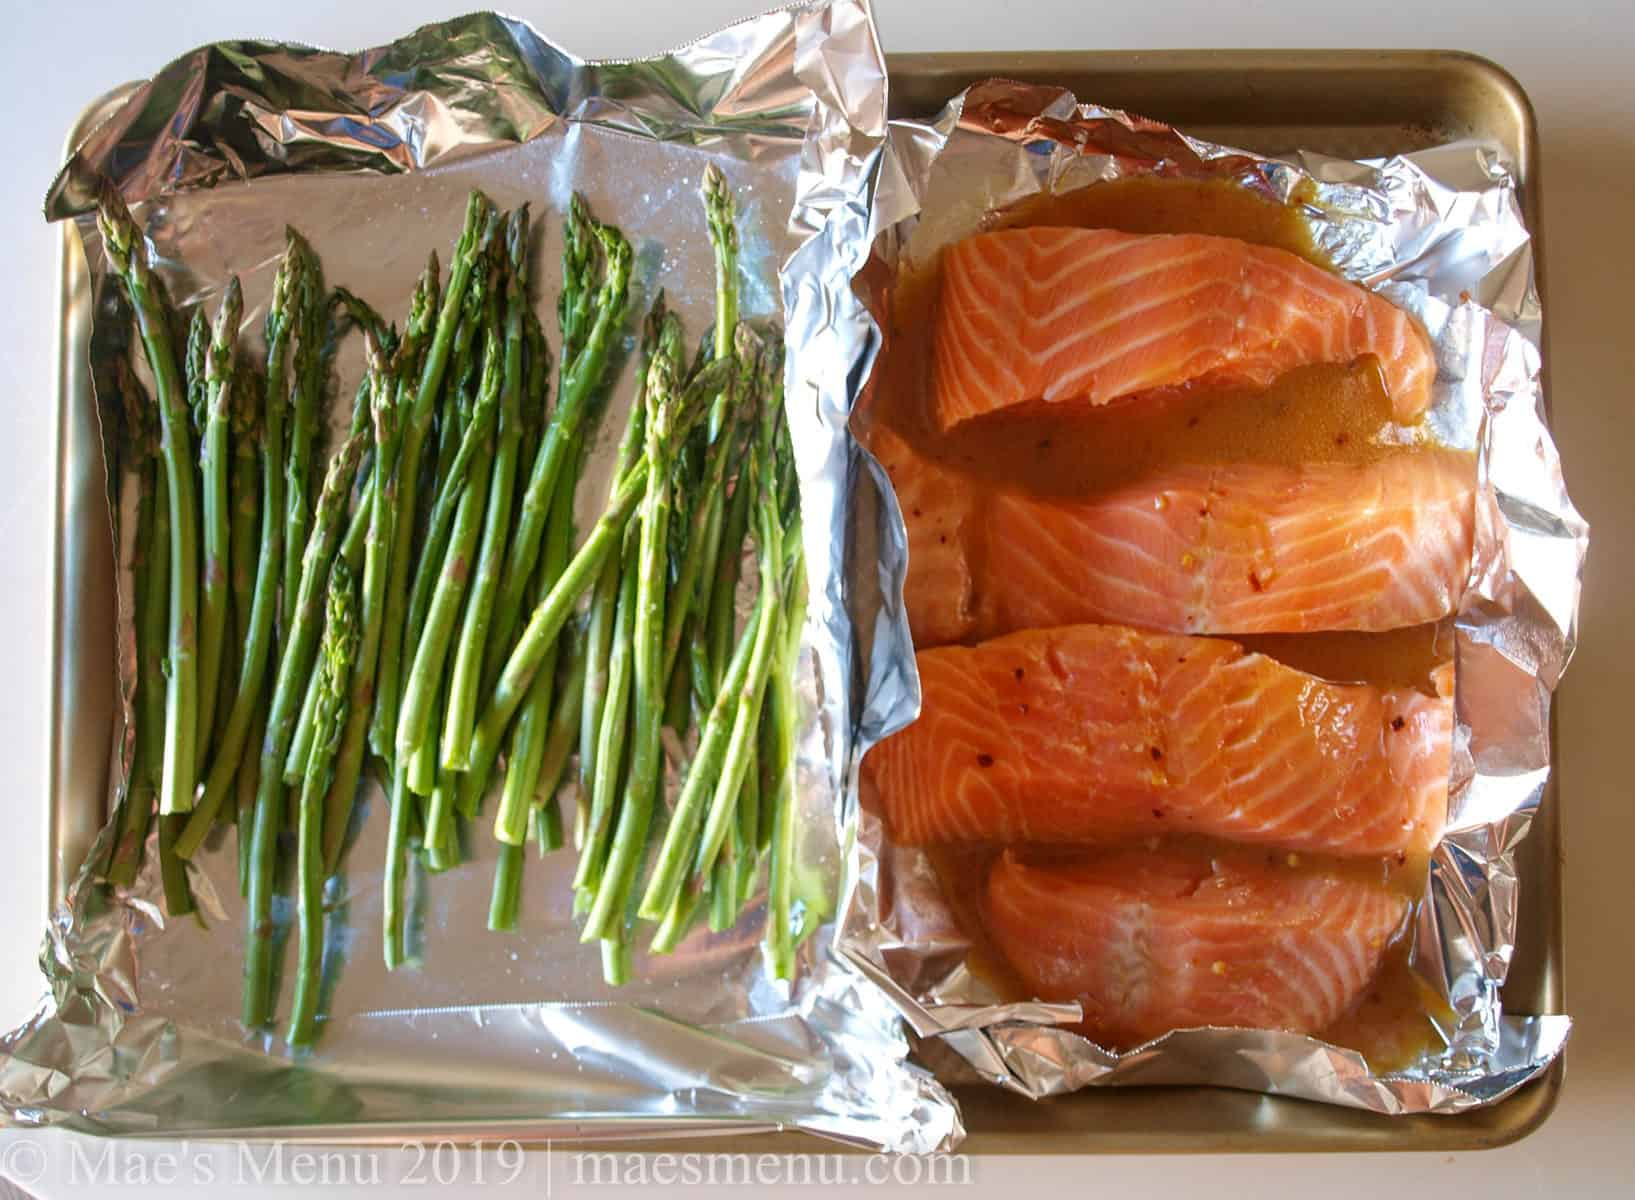 Salmon and asparagus roast in aluminum foil mini trays on a large baking sheet.